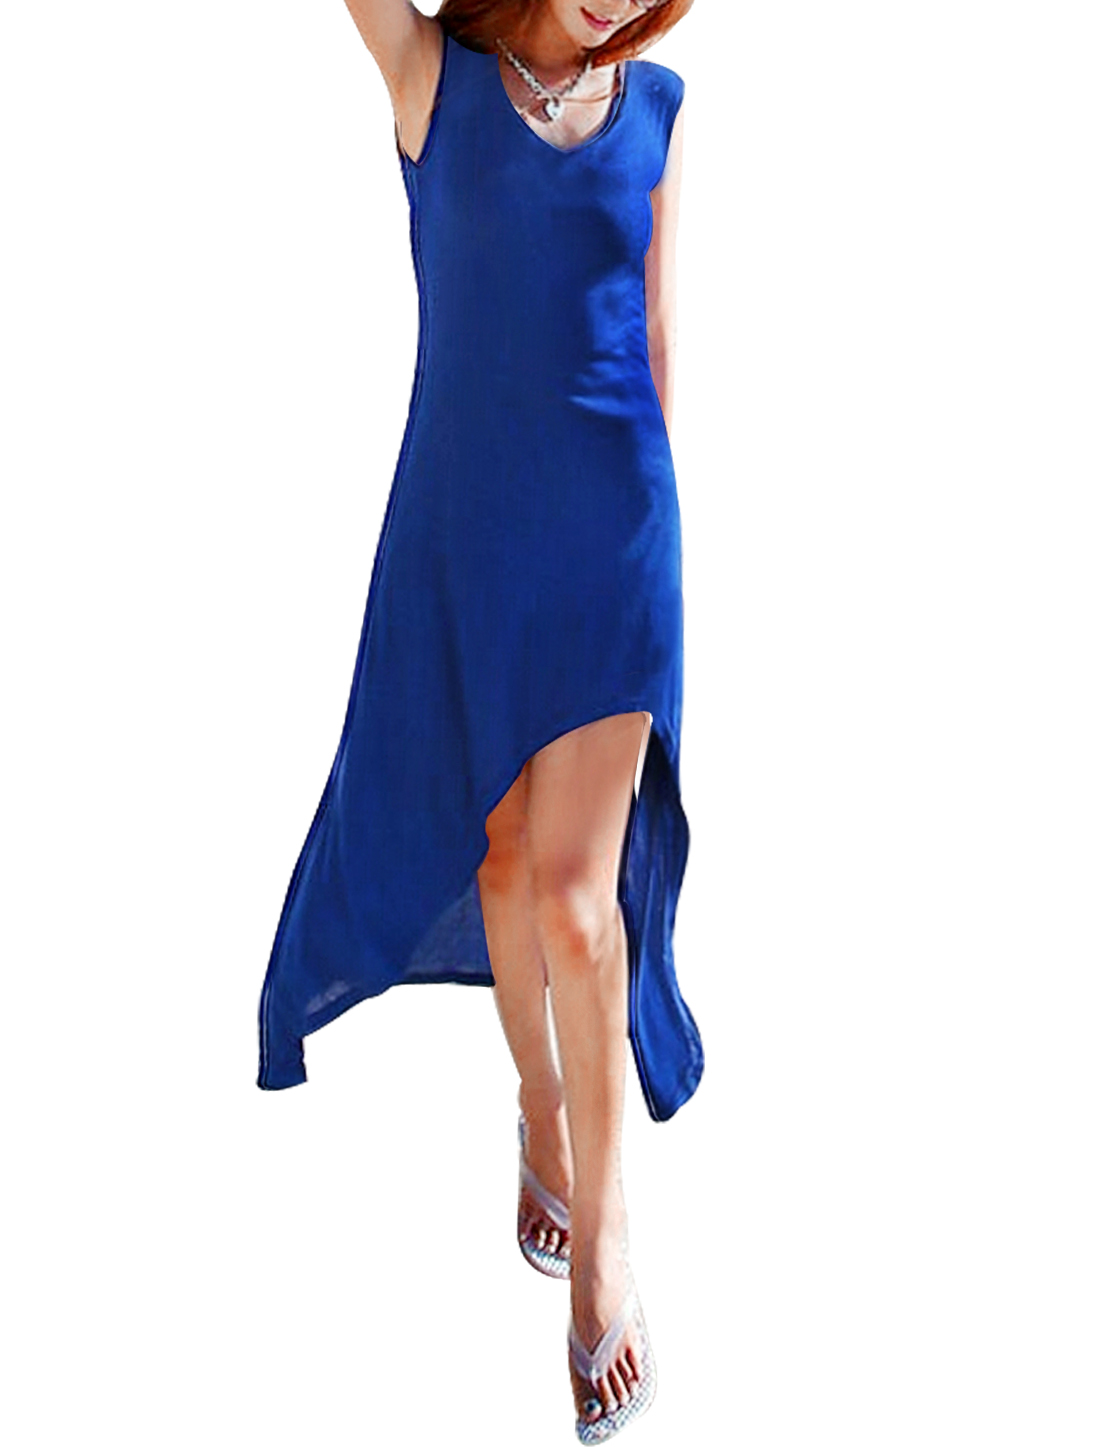 Women Sleeveless Scoop Neck Stretchy Beach Dress Royal Blue S